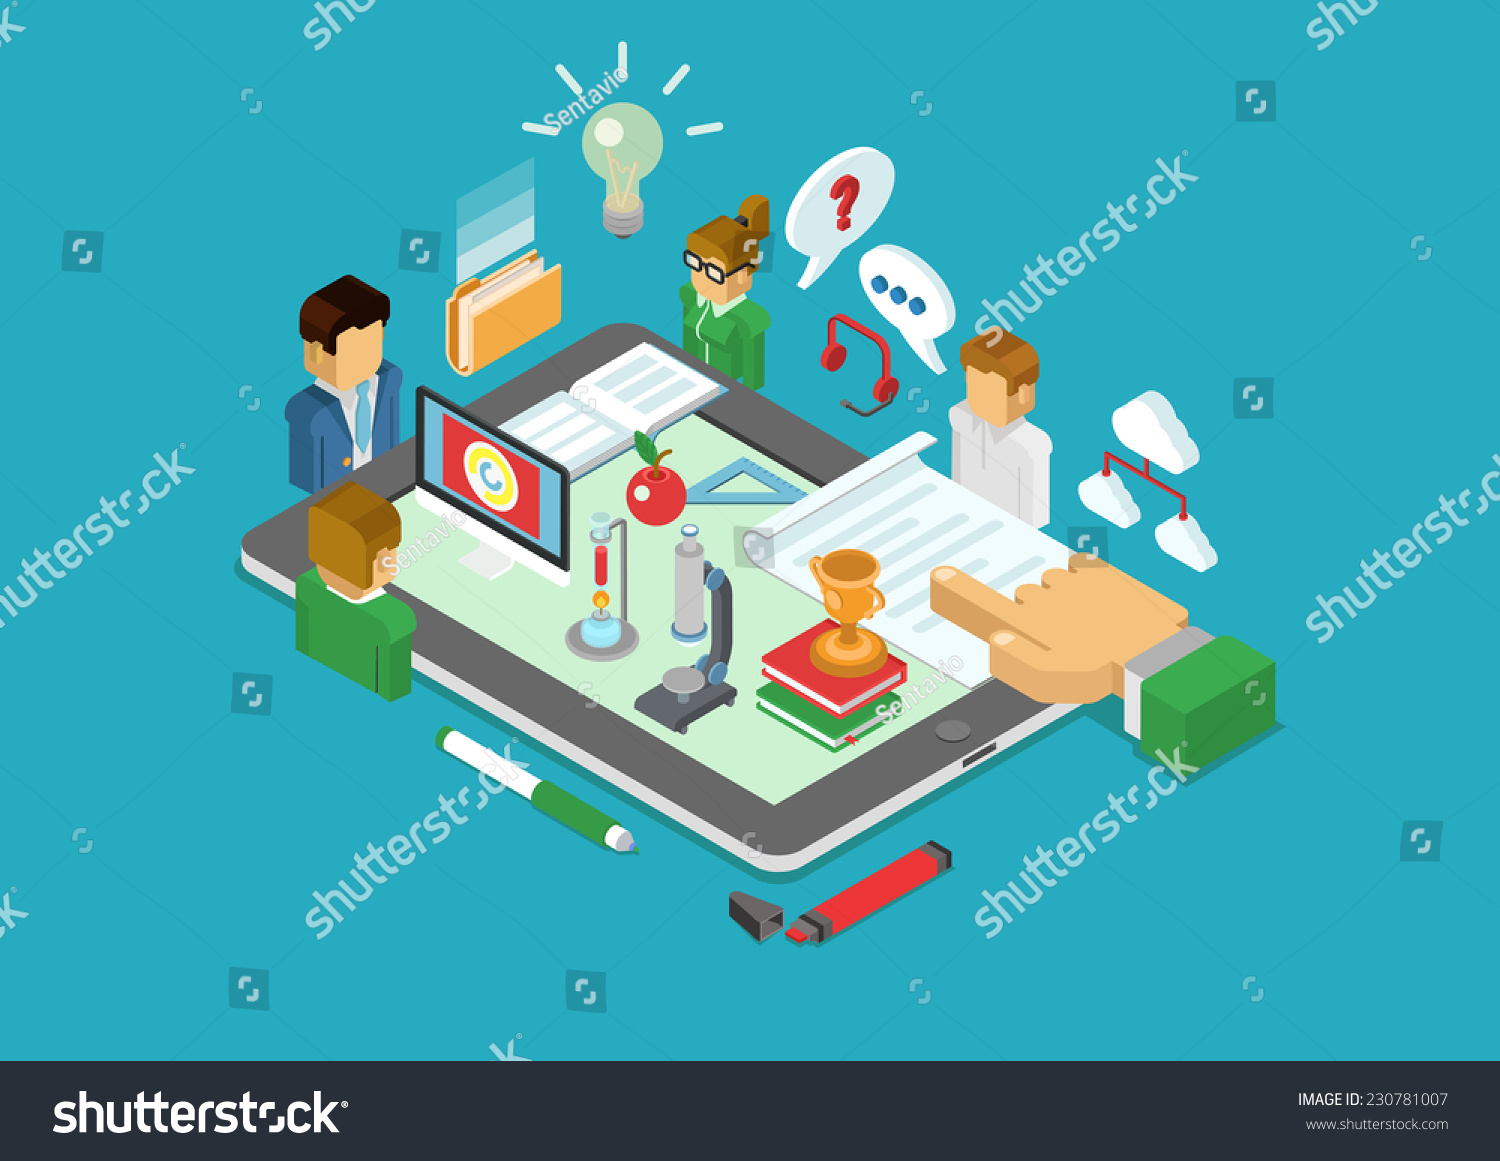 Flat 3d isometric science scientific research stock vector for 3d flat design online